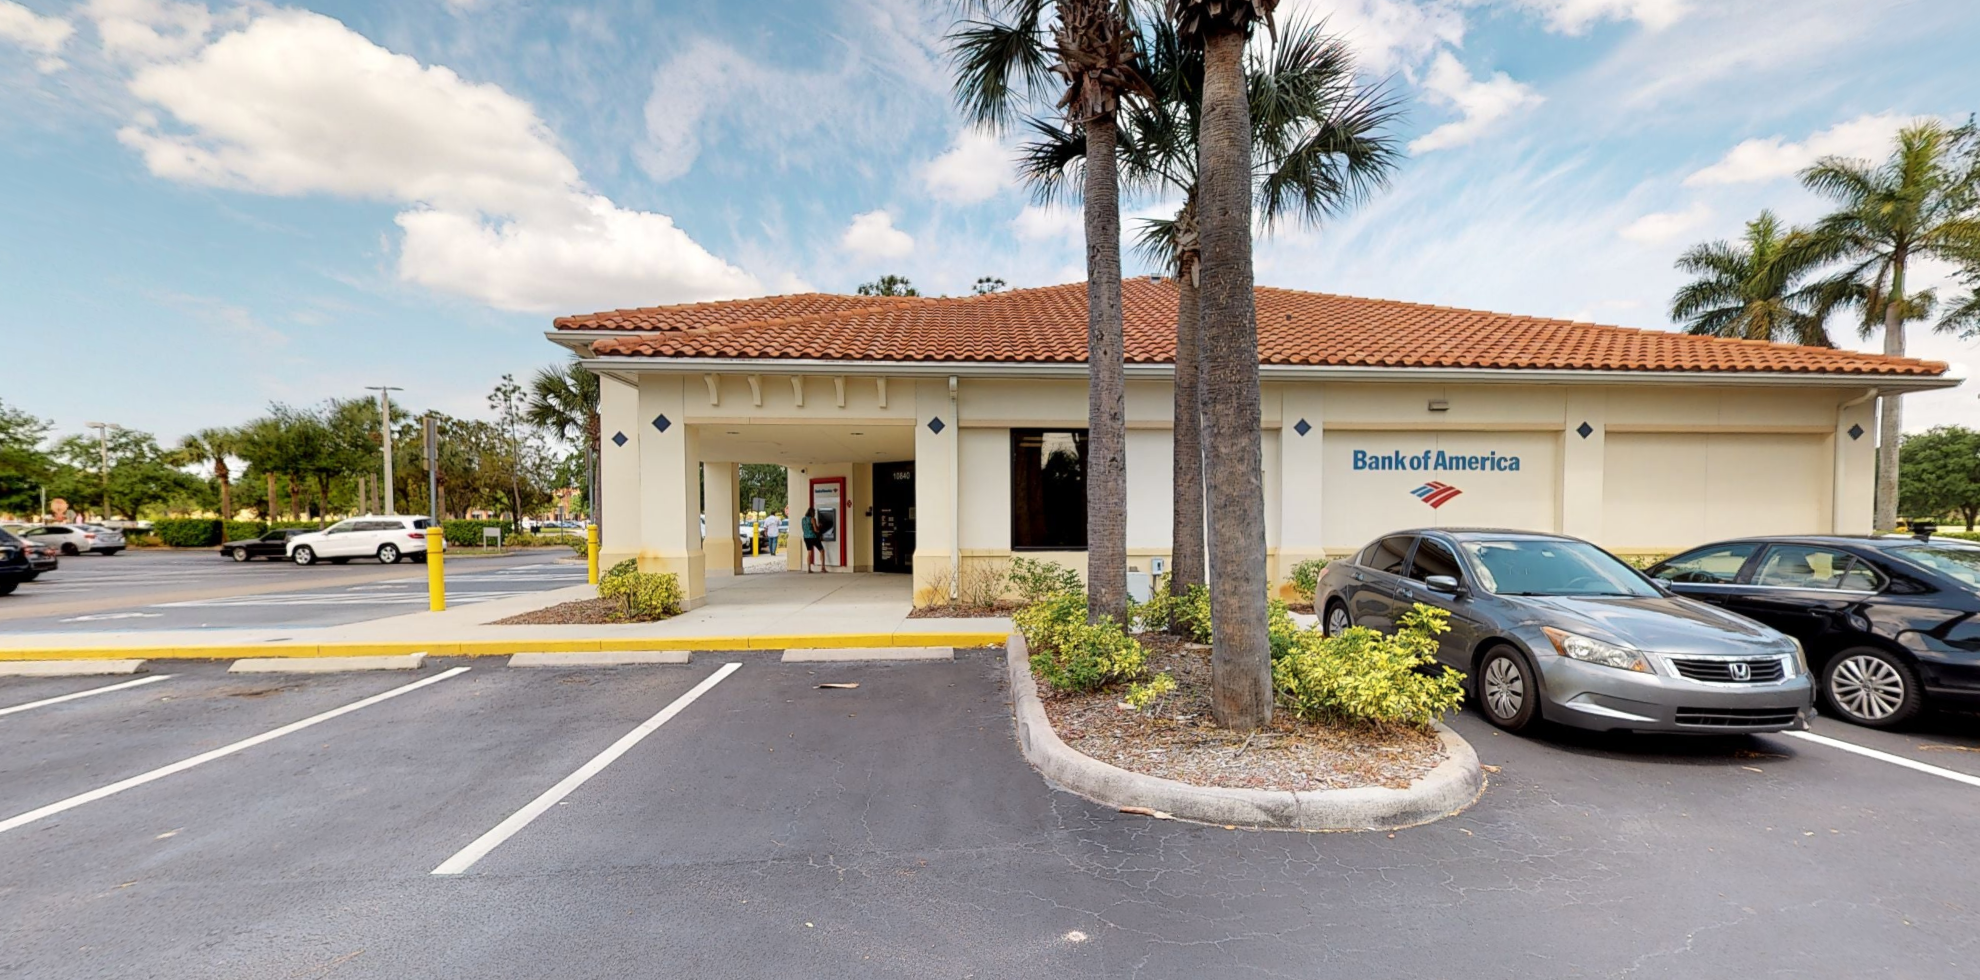 Bank of America financial center with drive-thru ATM   10840 Miromar Outlet Dr, Estero, FL 33928